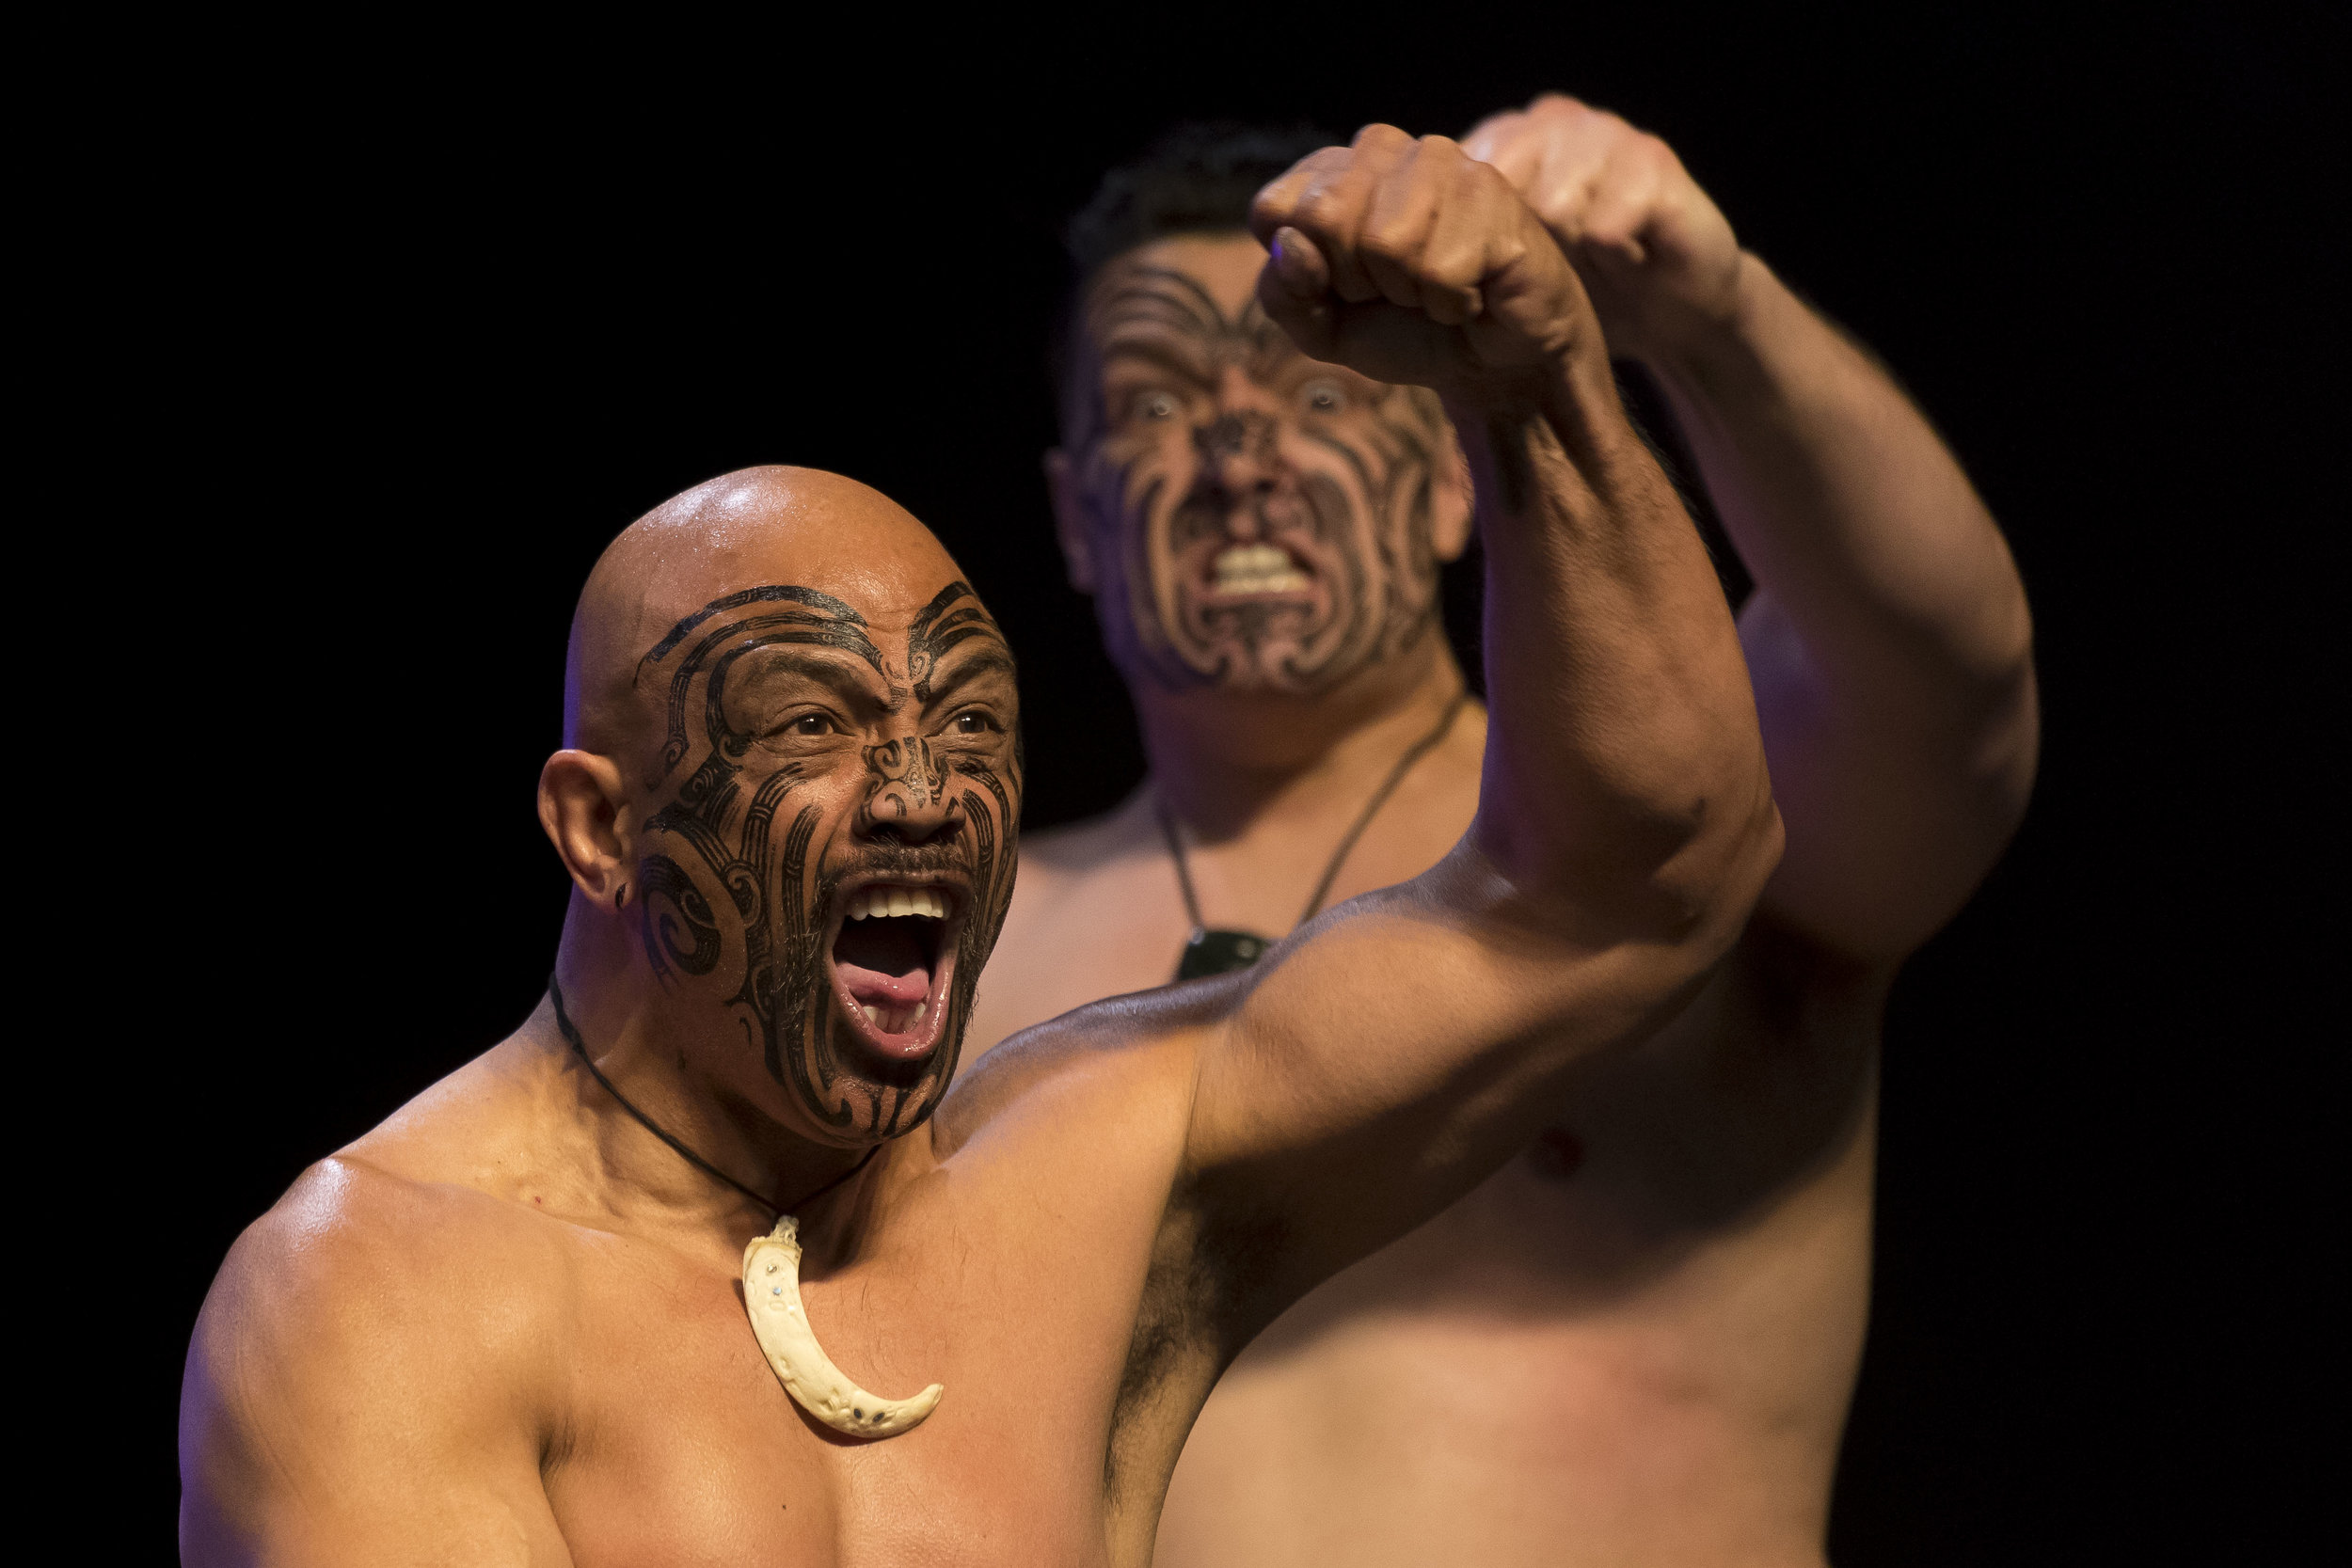 CARDIFF, WALES - MARCH 30: A traditional Haka dance is performed ahead of Joseph Parker's entrance during the weigh-in at the Motorpoint Arena on March 30, 2018 in Cardiff, Wales. Anthony Joshua will fight Joseph Parker in a heavyweight unification match at the Principality Stadium in Cardiff on March 31. (Photo by Matthew Horwood/Getty Images)